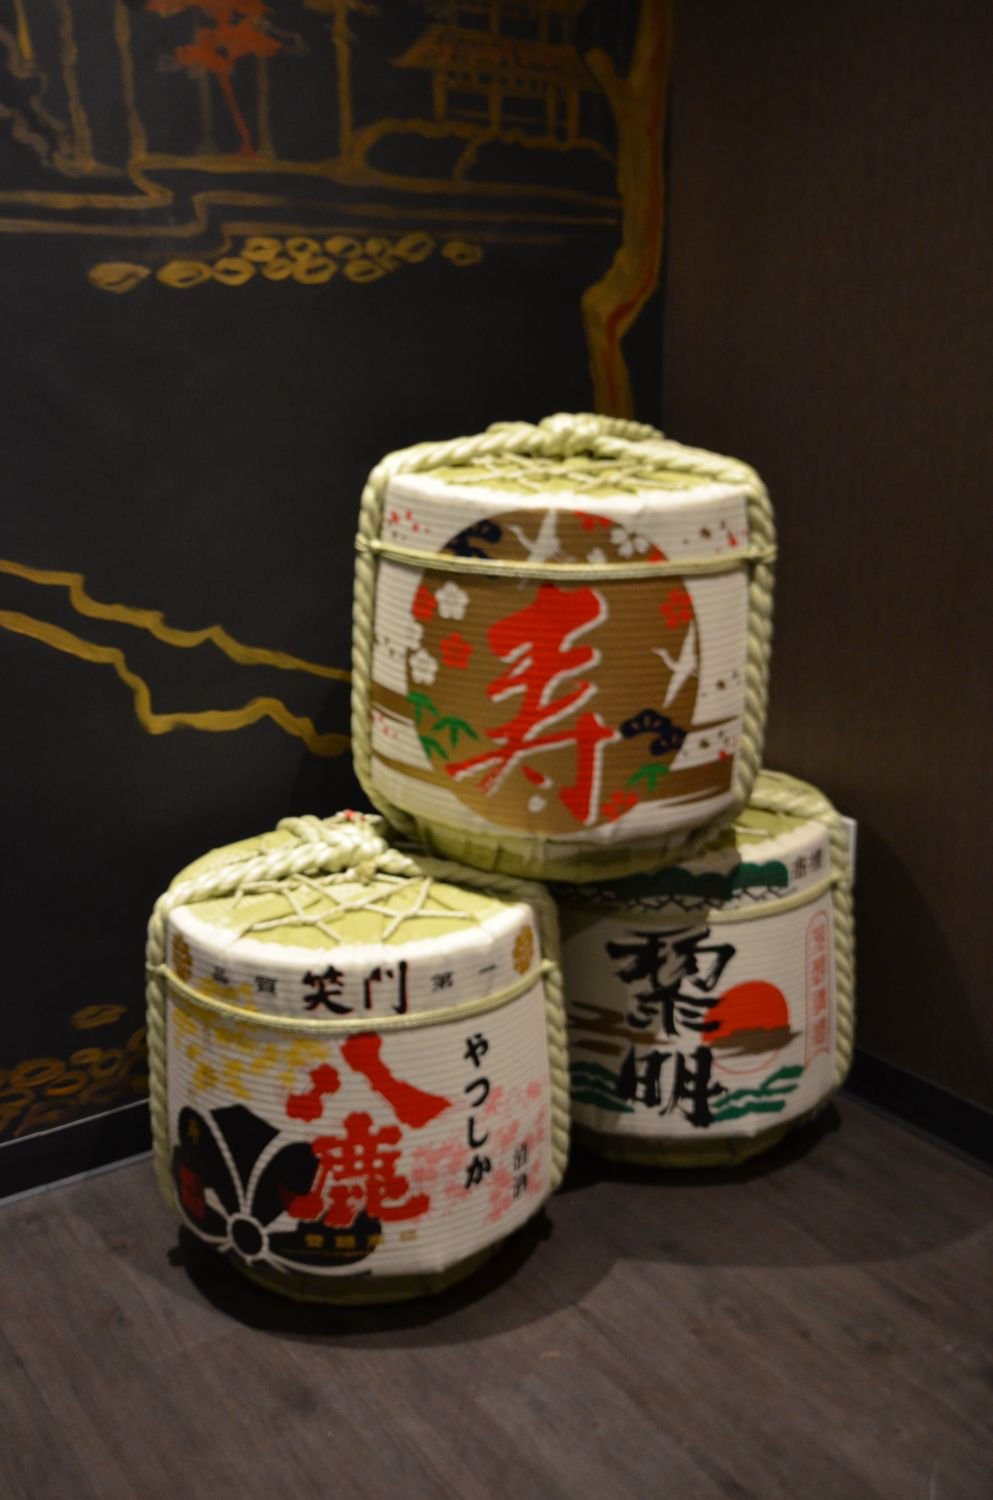 Who Knew Rice Wine Could Be So Complicated?